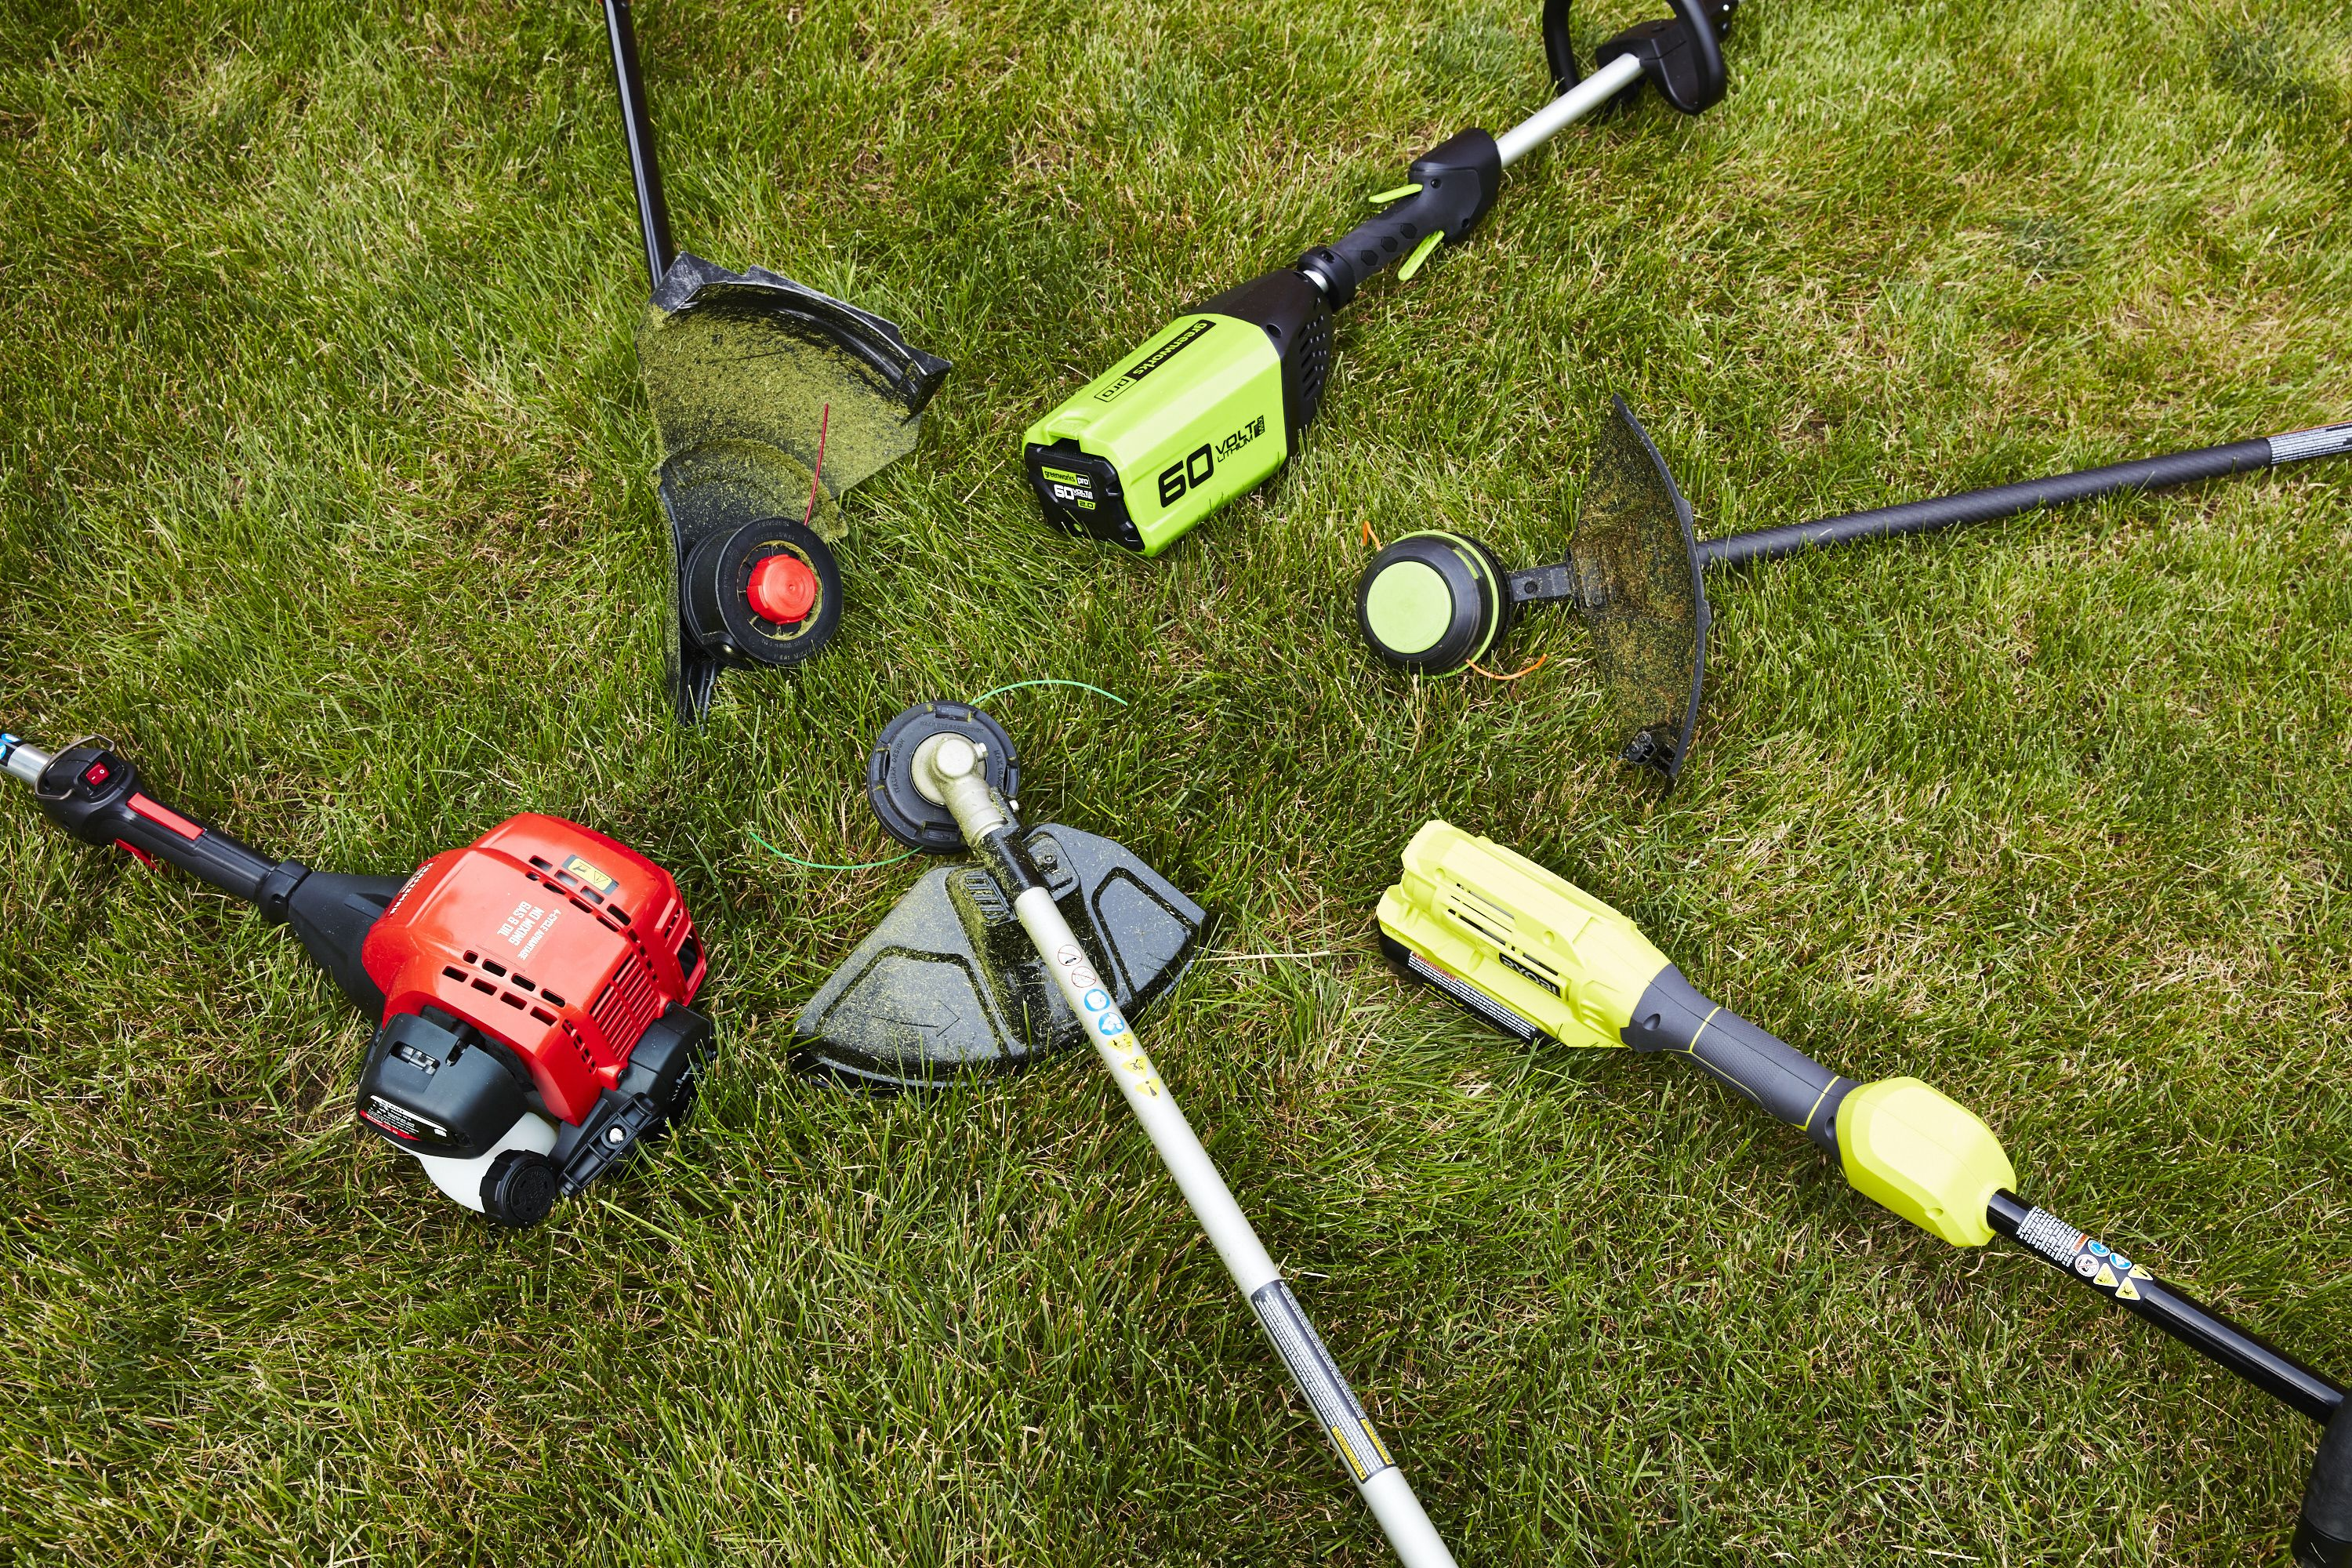 Best Weed Trimmer 2019 Best Weed Wackers of 2019 | 13 Best String Trimmers